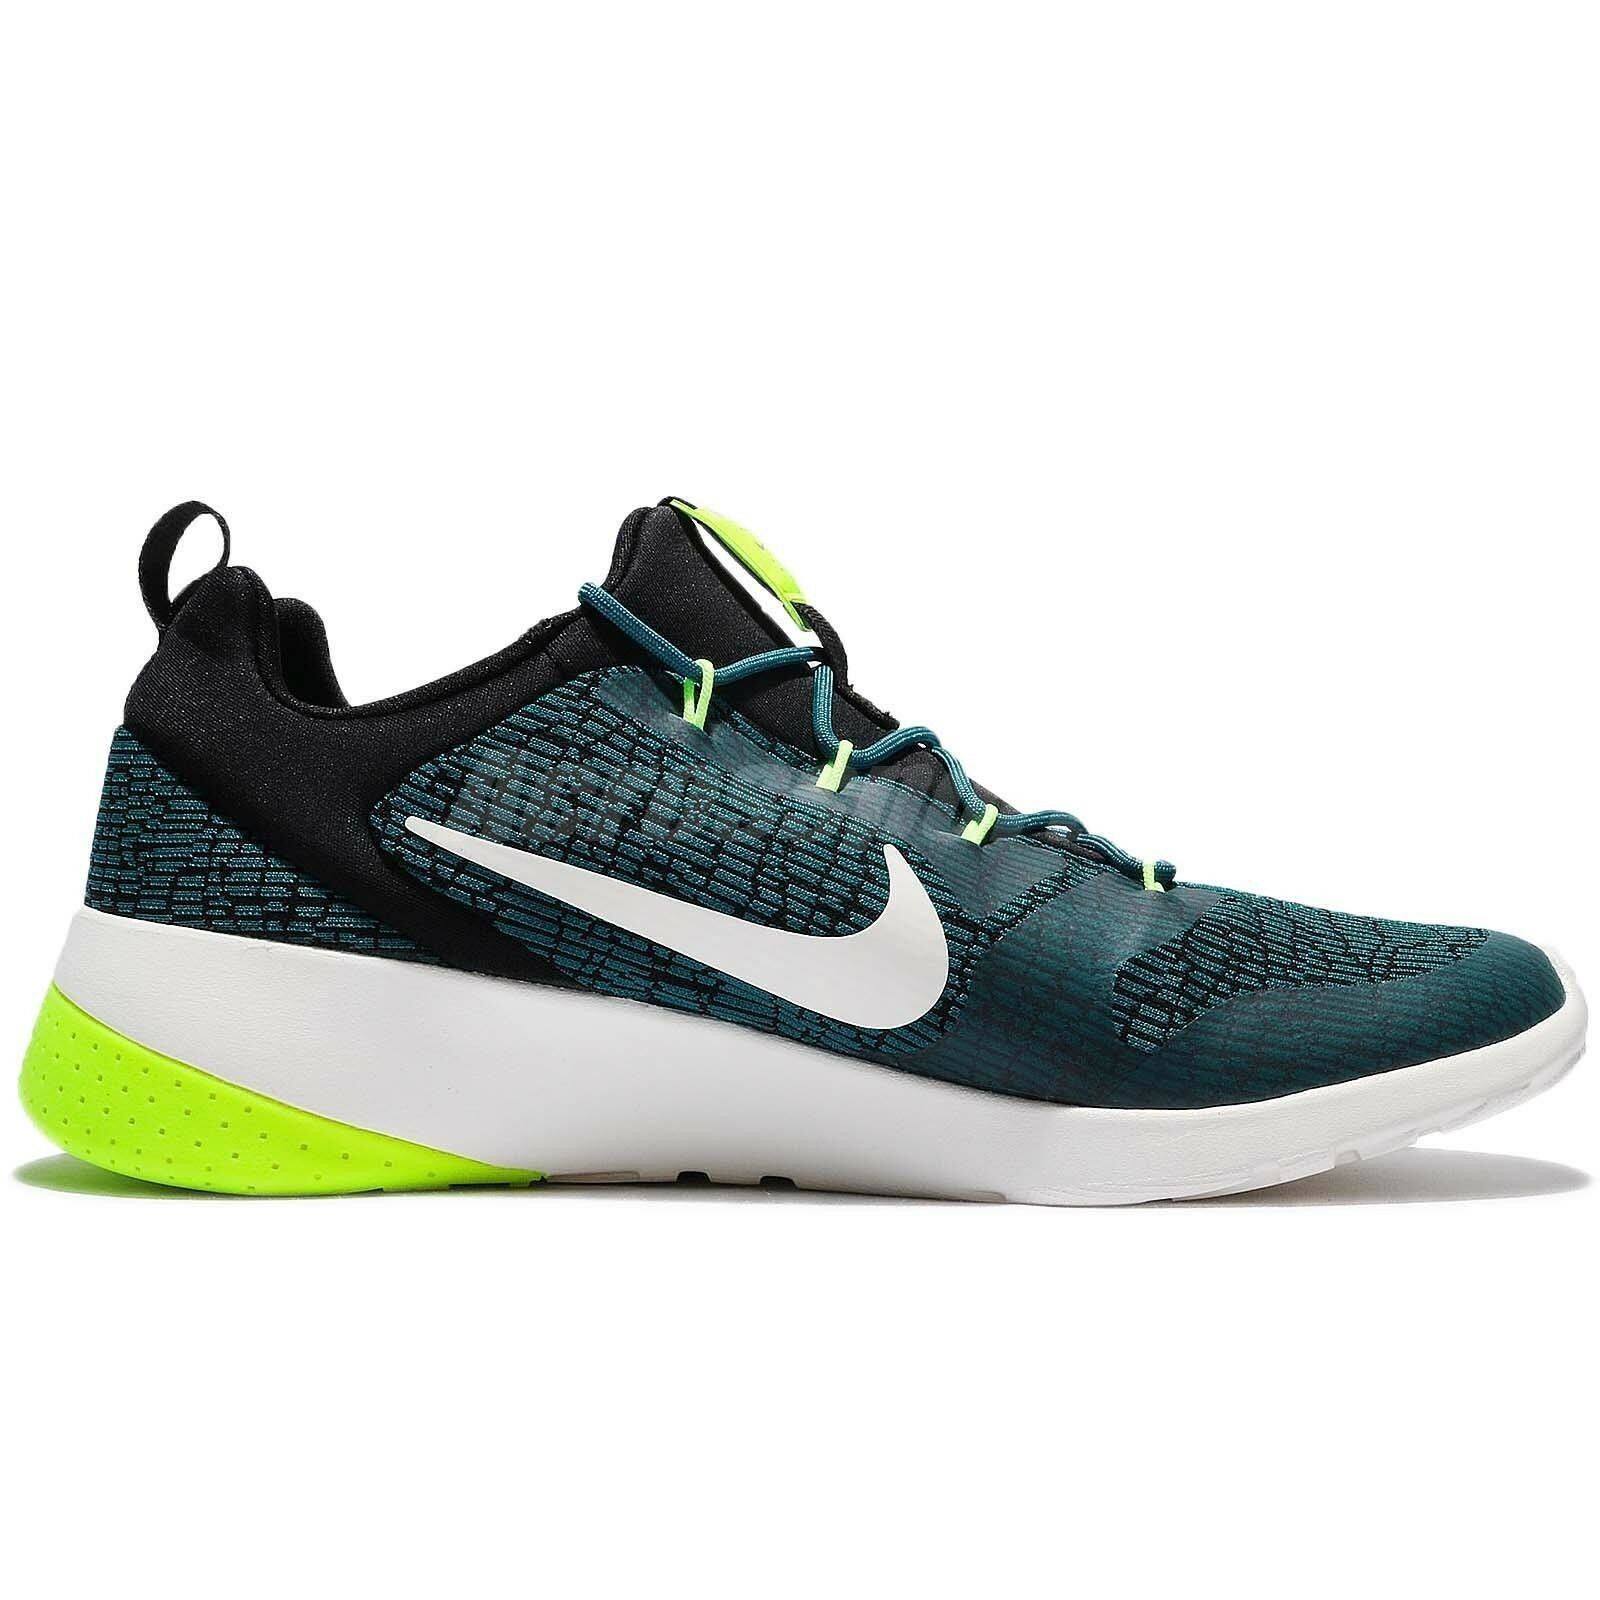 big sale 5321d 258f1 ... ireland nike hombre ck corriendo racer track negro voltios corriendo ck  athletic shoes 916780 400 cómodo